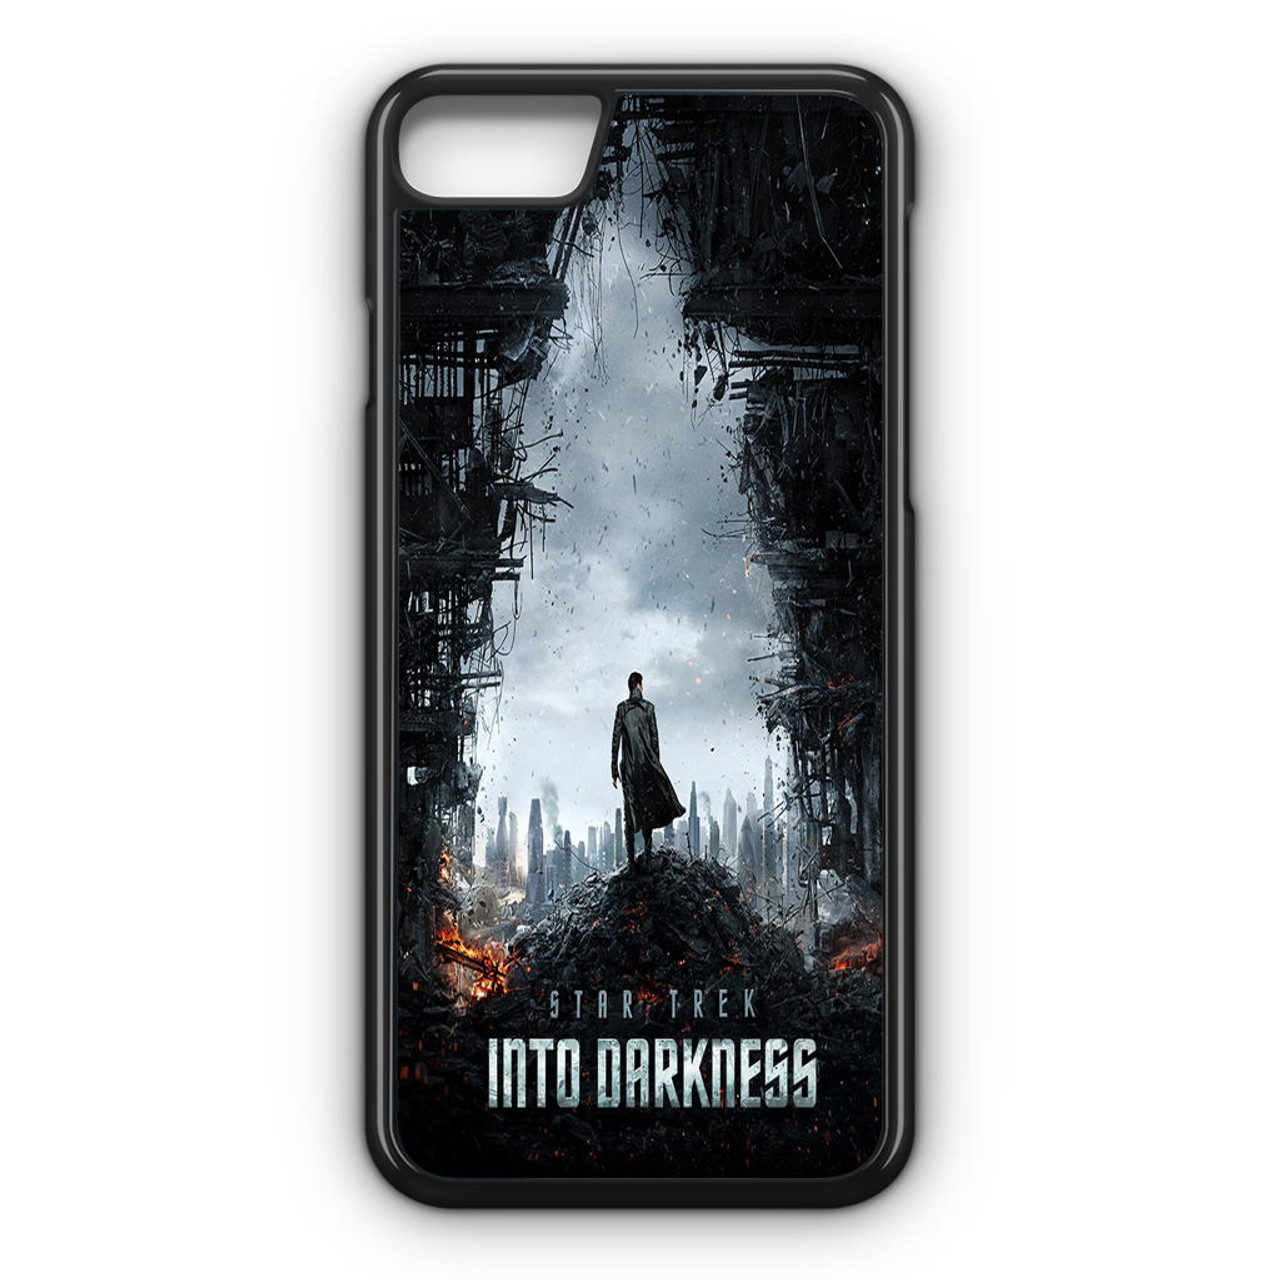 reputable site aa340 51bbd Star Trek Into Darkness iPhone 8 Case